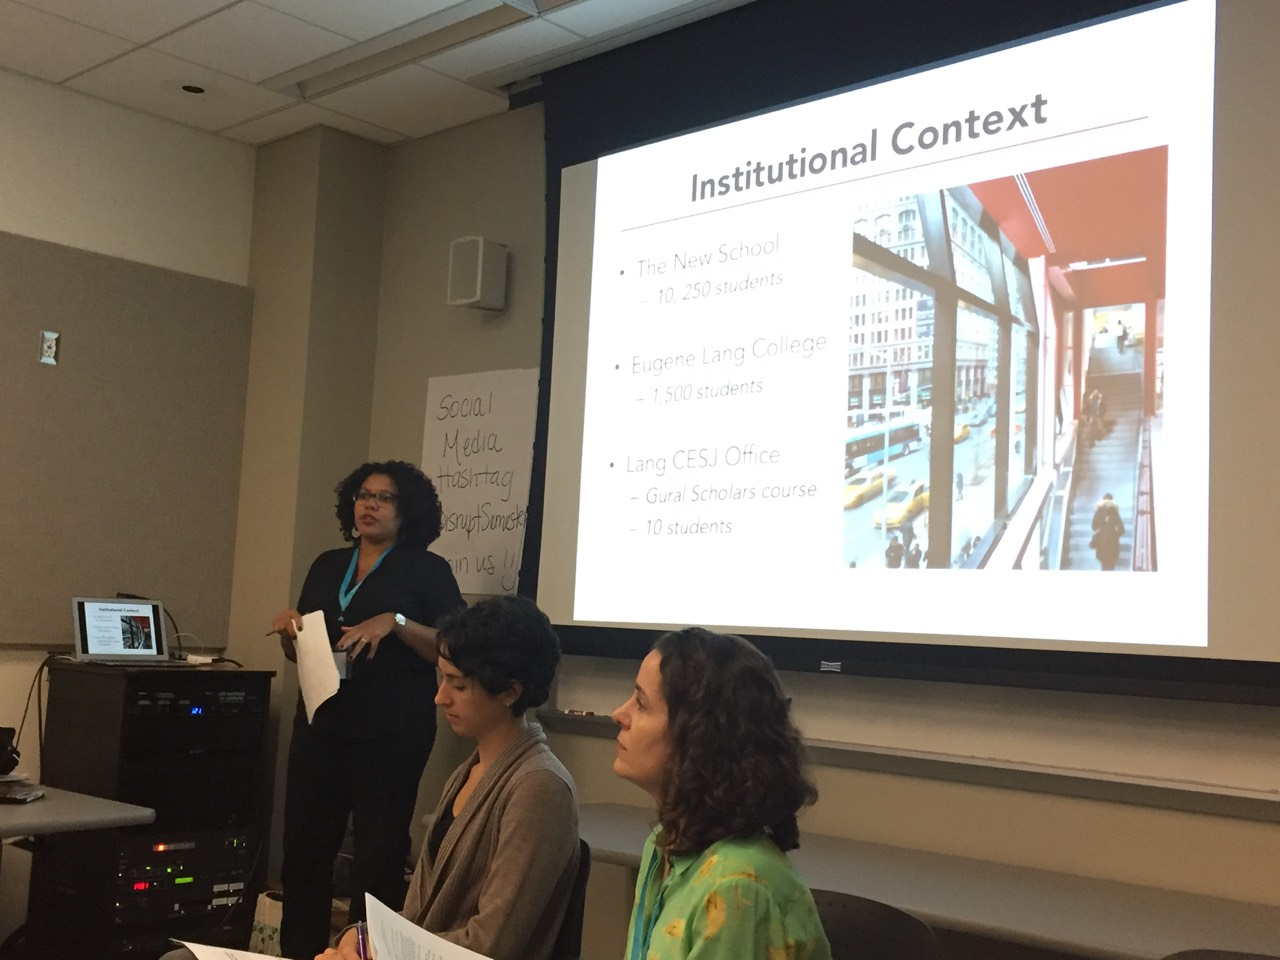 Judy Pryor-Ramirez presents at Imagining America Conference